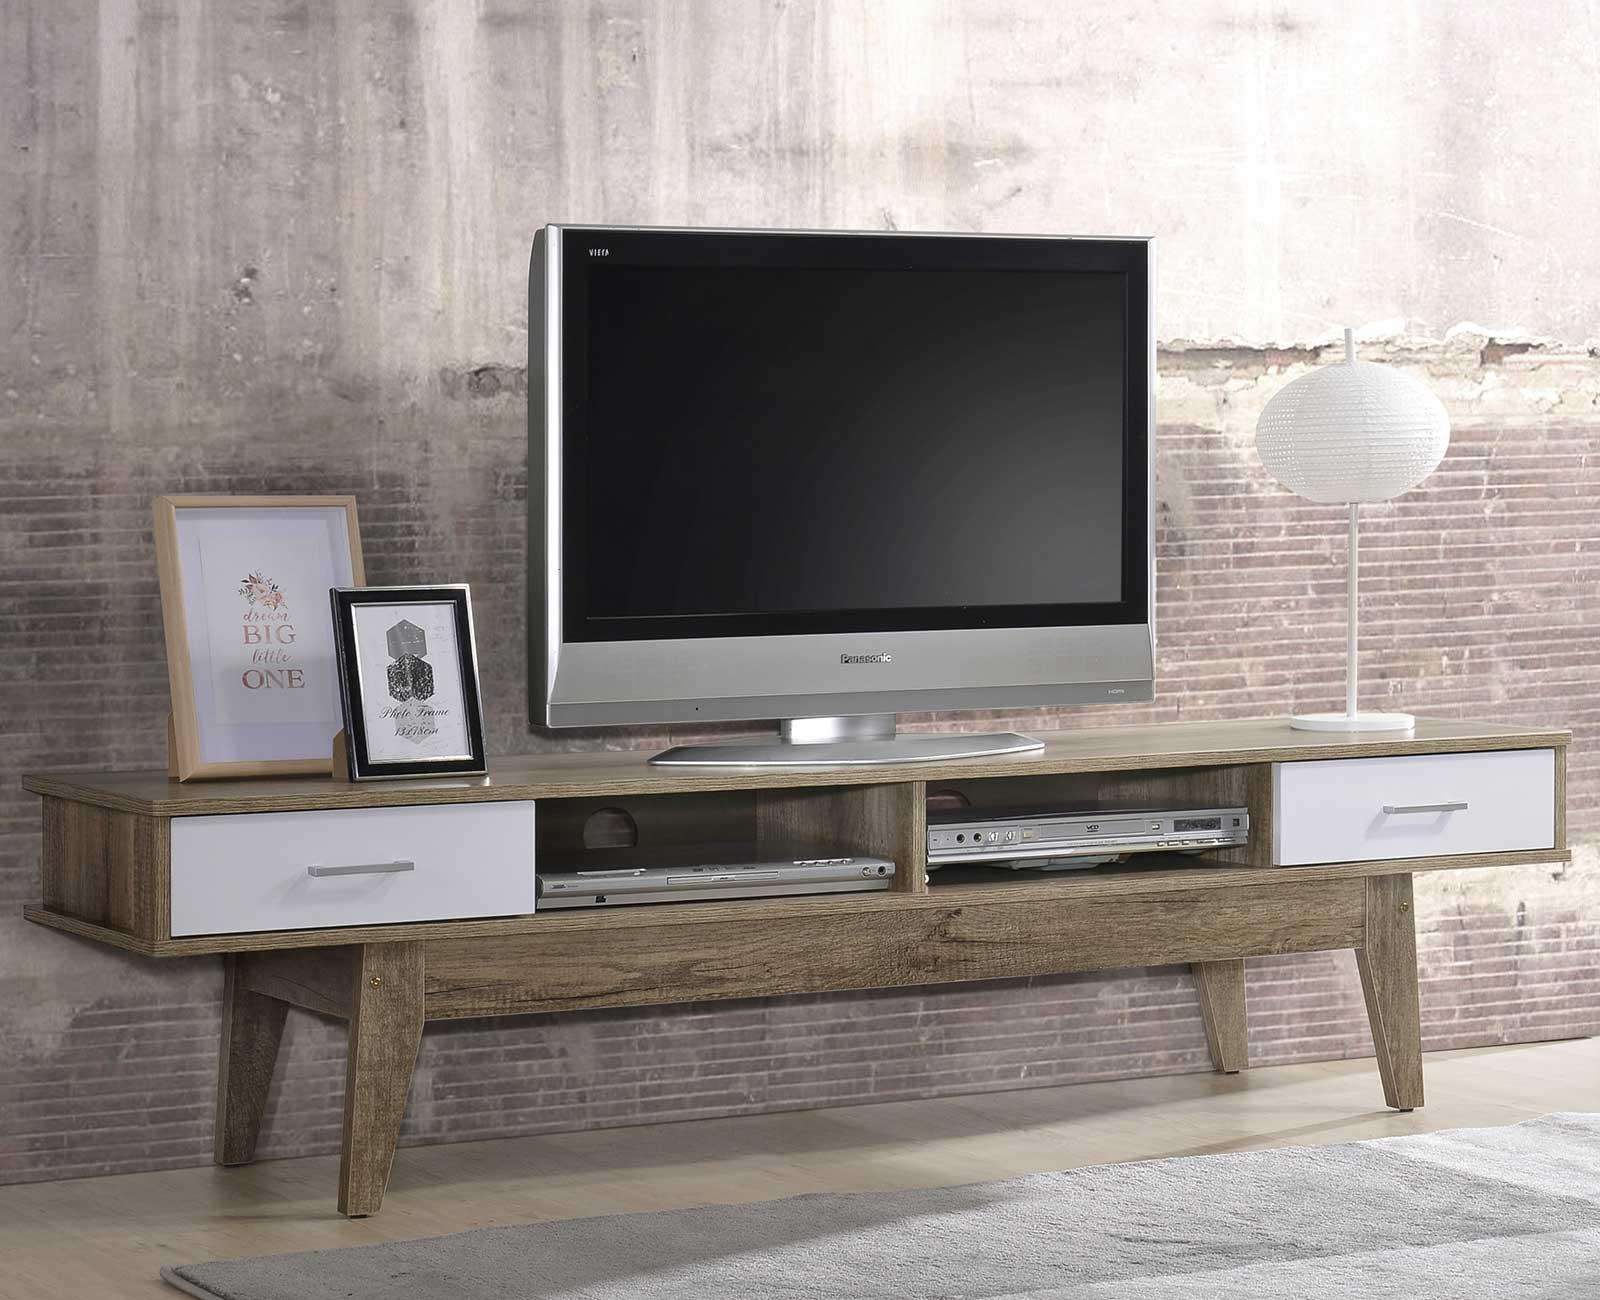 Scandinavian TV Console - 1.8m / 6ft Cabinet Shelves Stand Entertainment Unit ⭐ E-LIVING Furniture